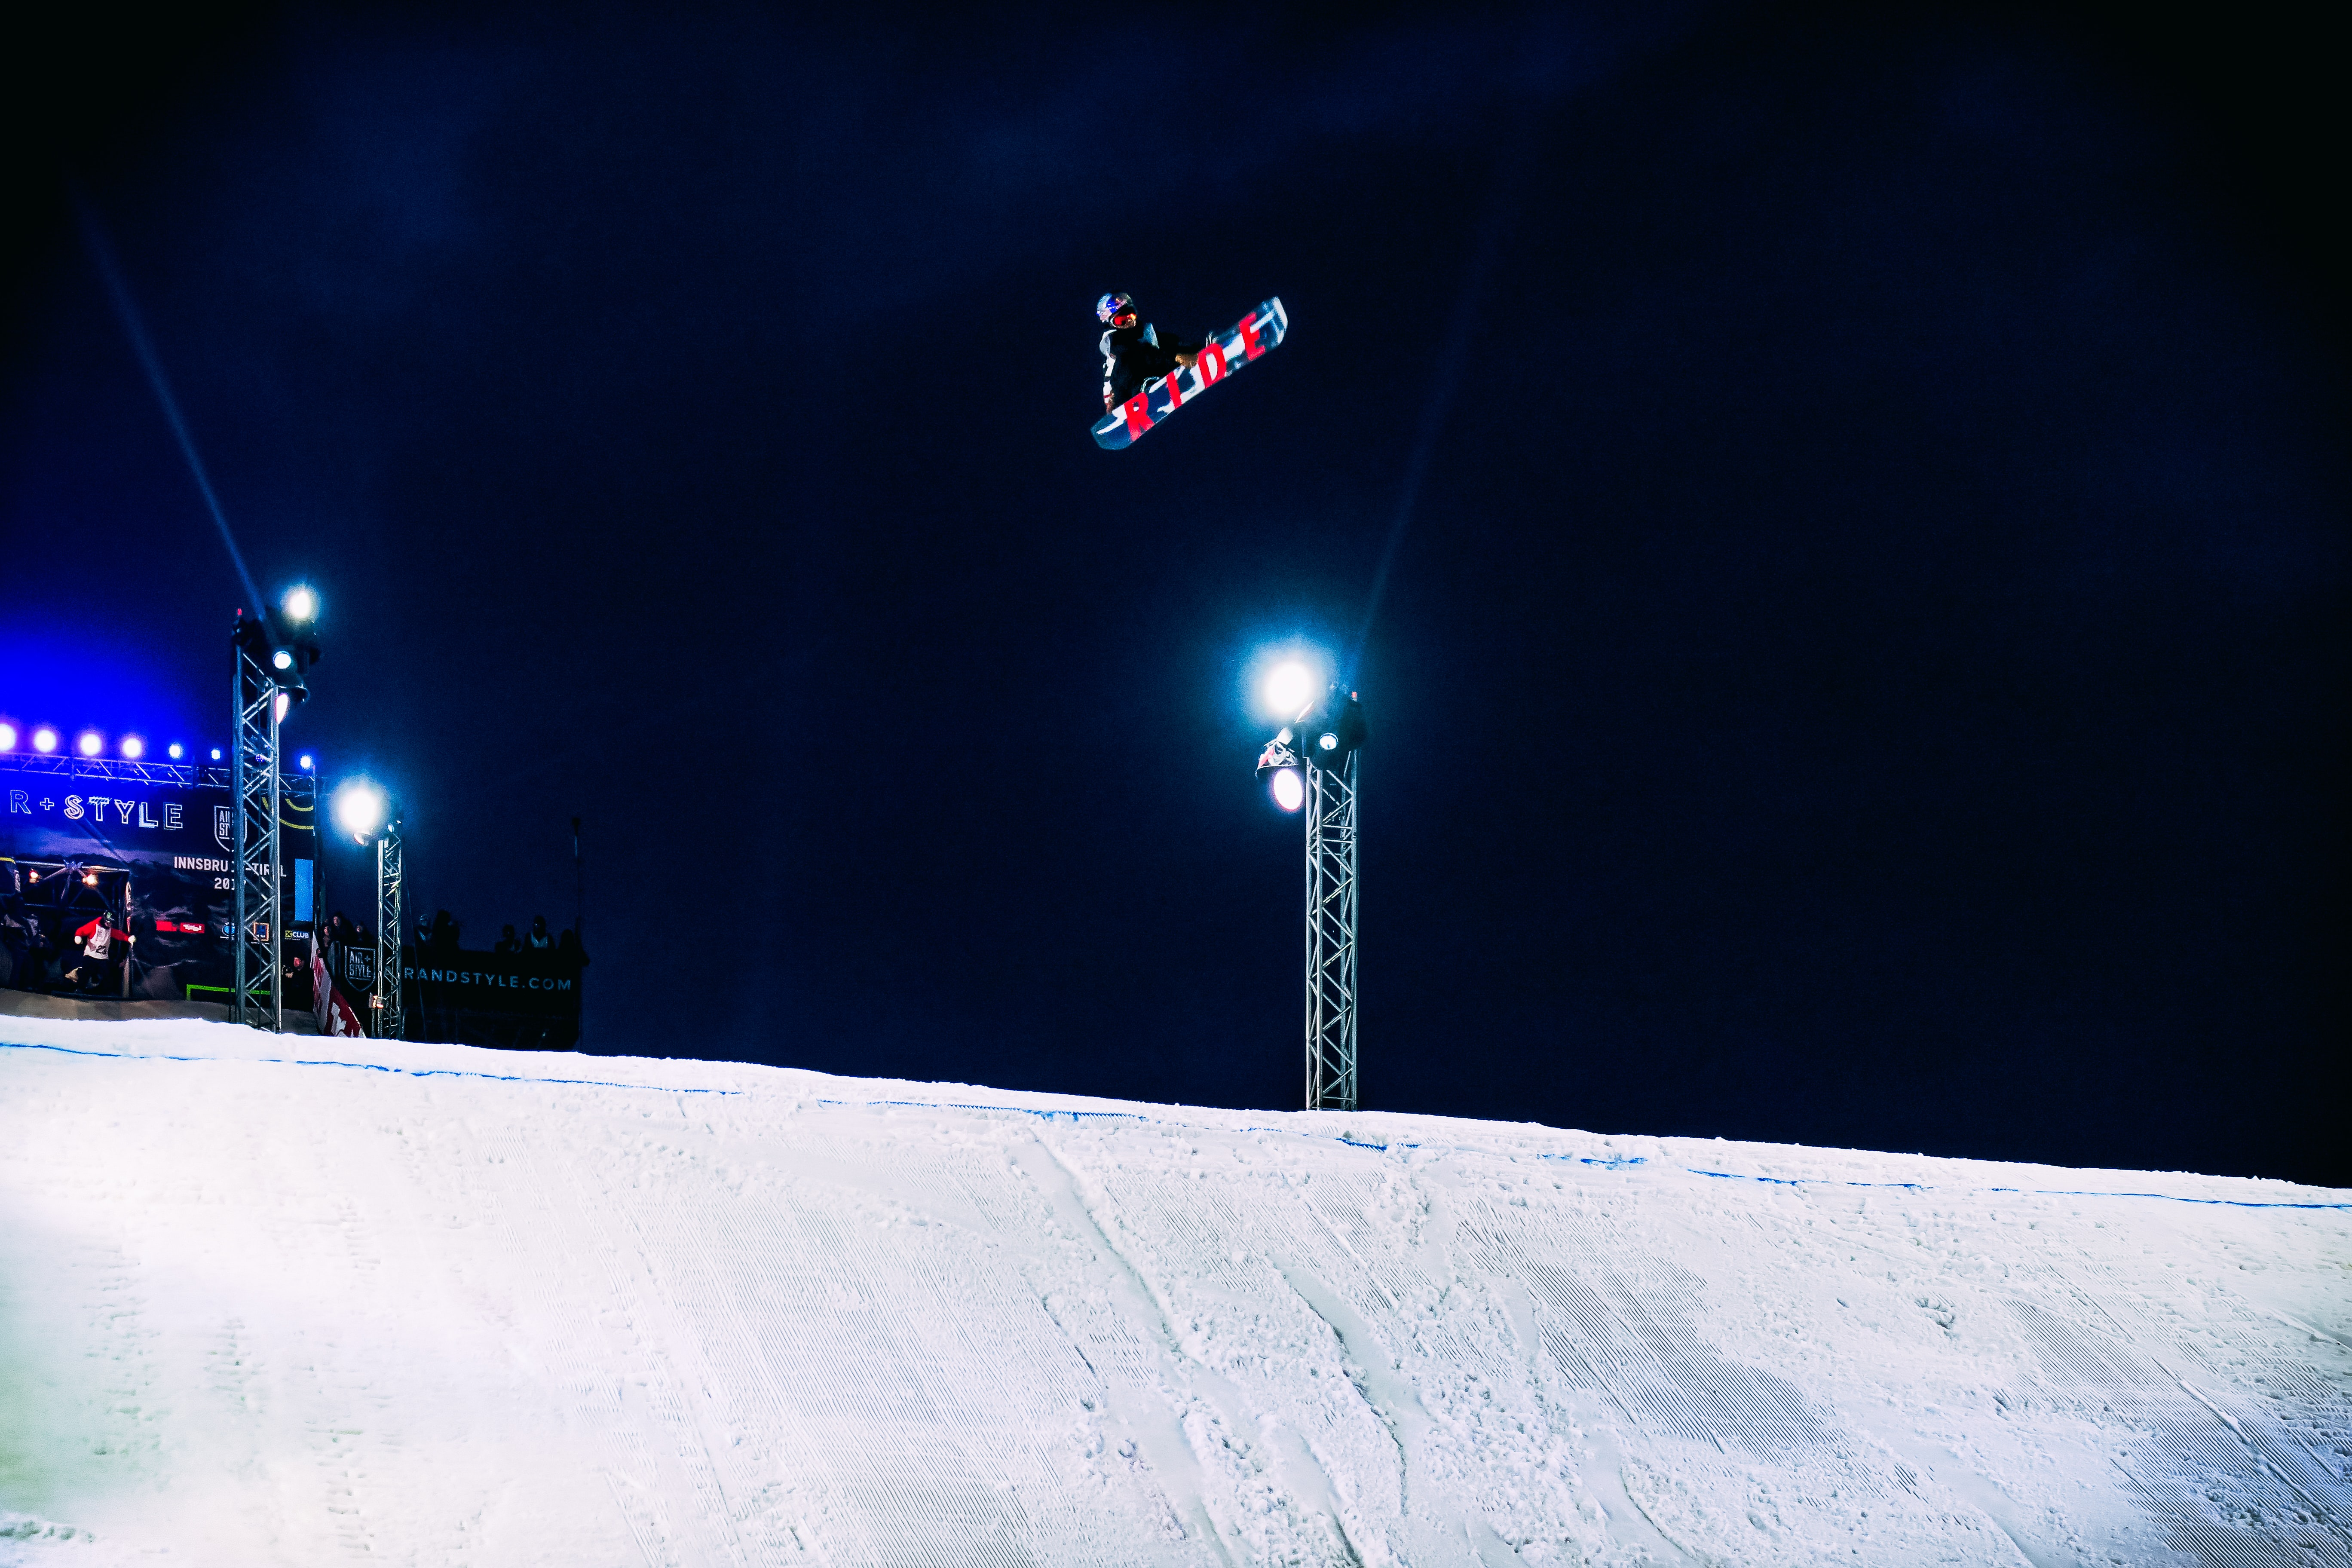 person on snowboard jumping above ramp